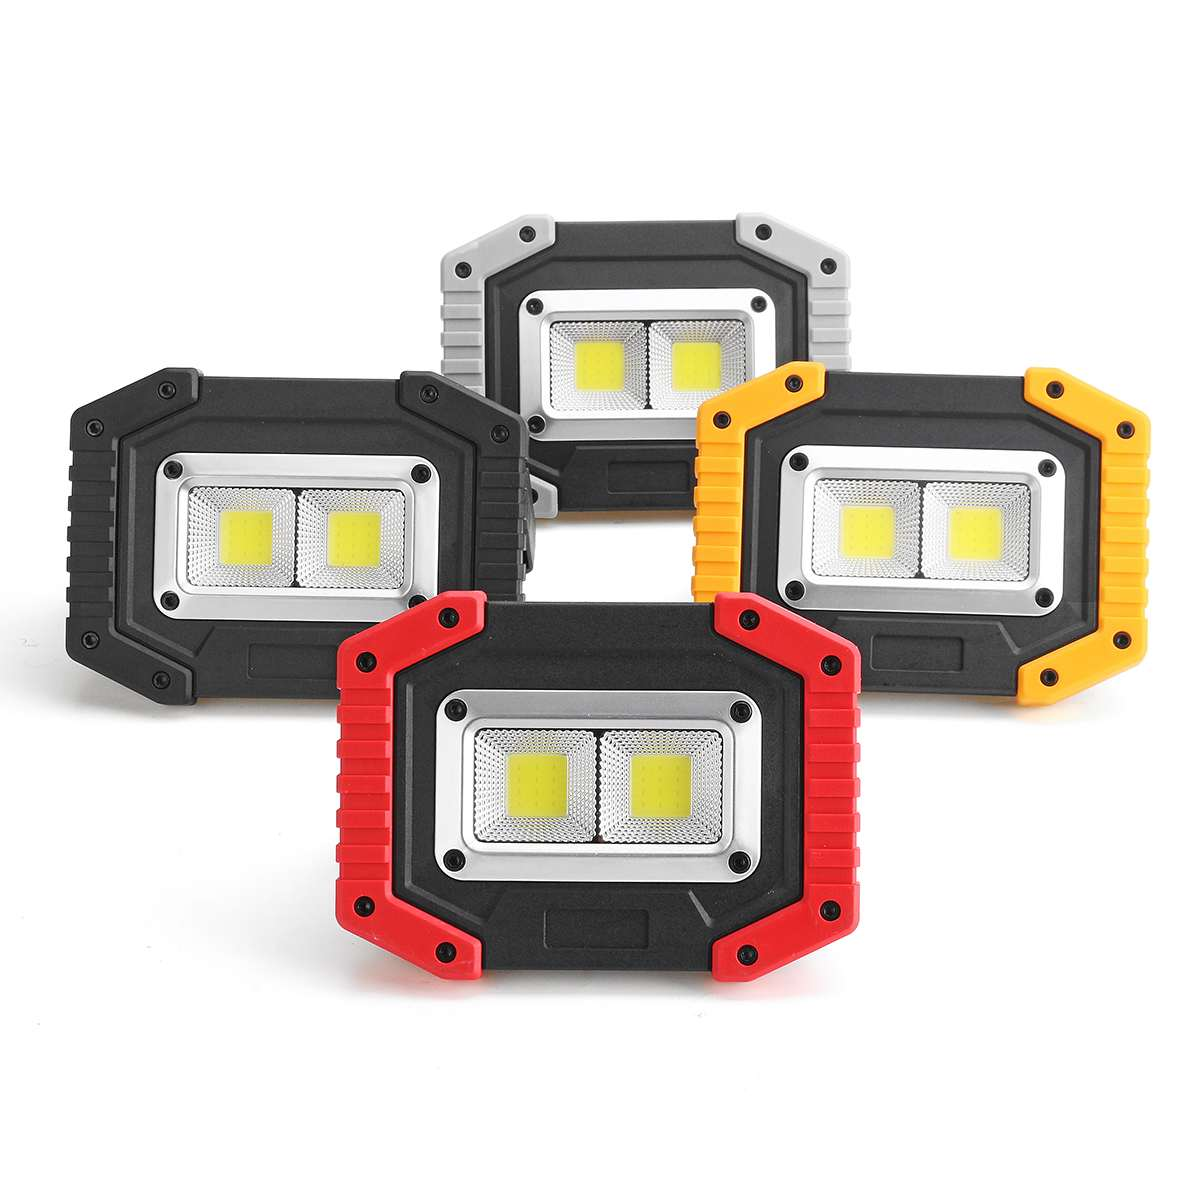 30W 2 COB LED Portable Spotlight Outdoor Light For Hunting Camping Lamp Floodlight Searchlight 18650 Rechargeable Battery